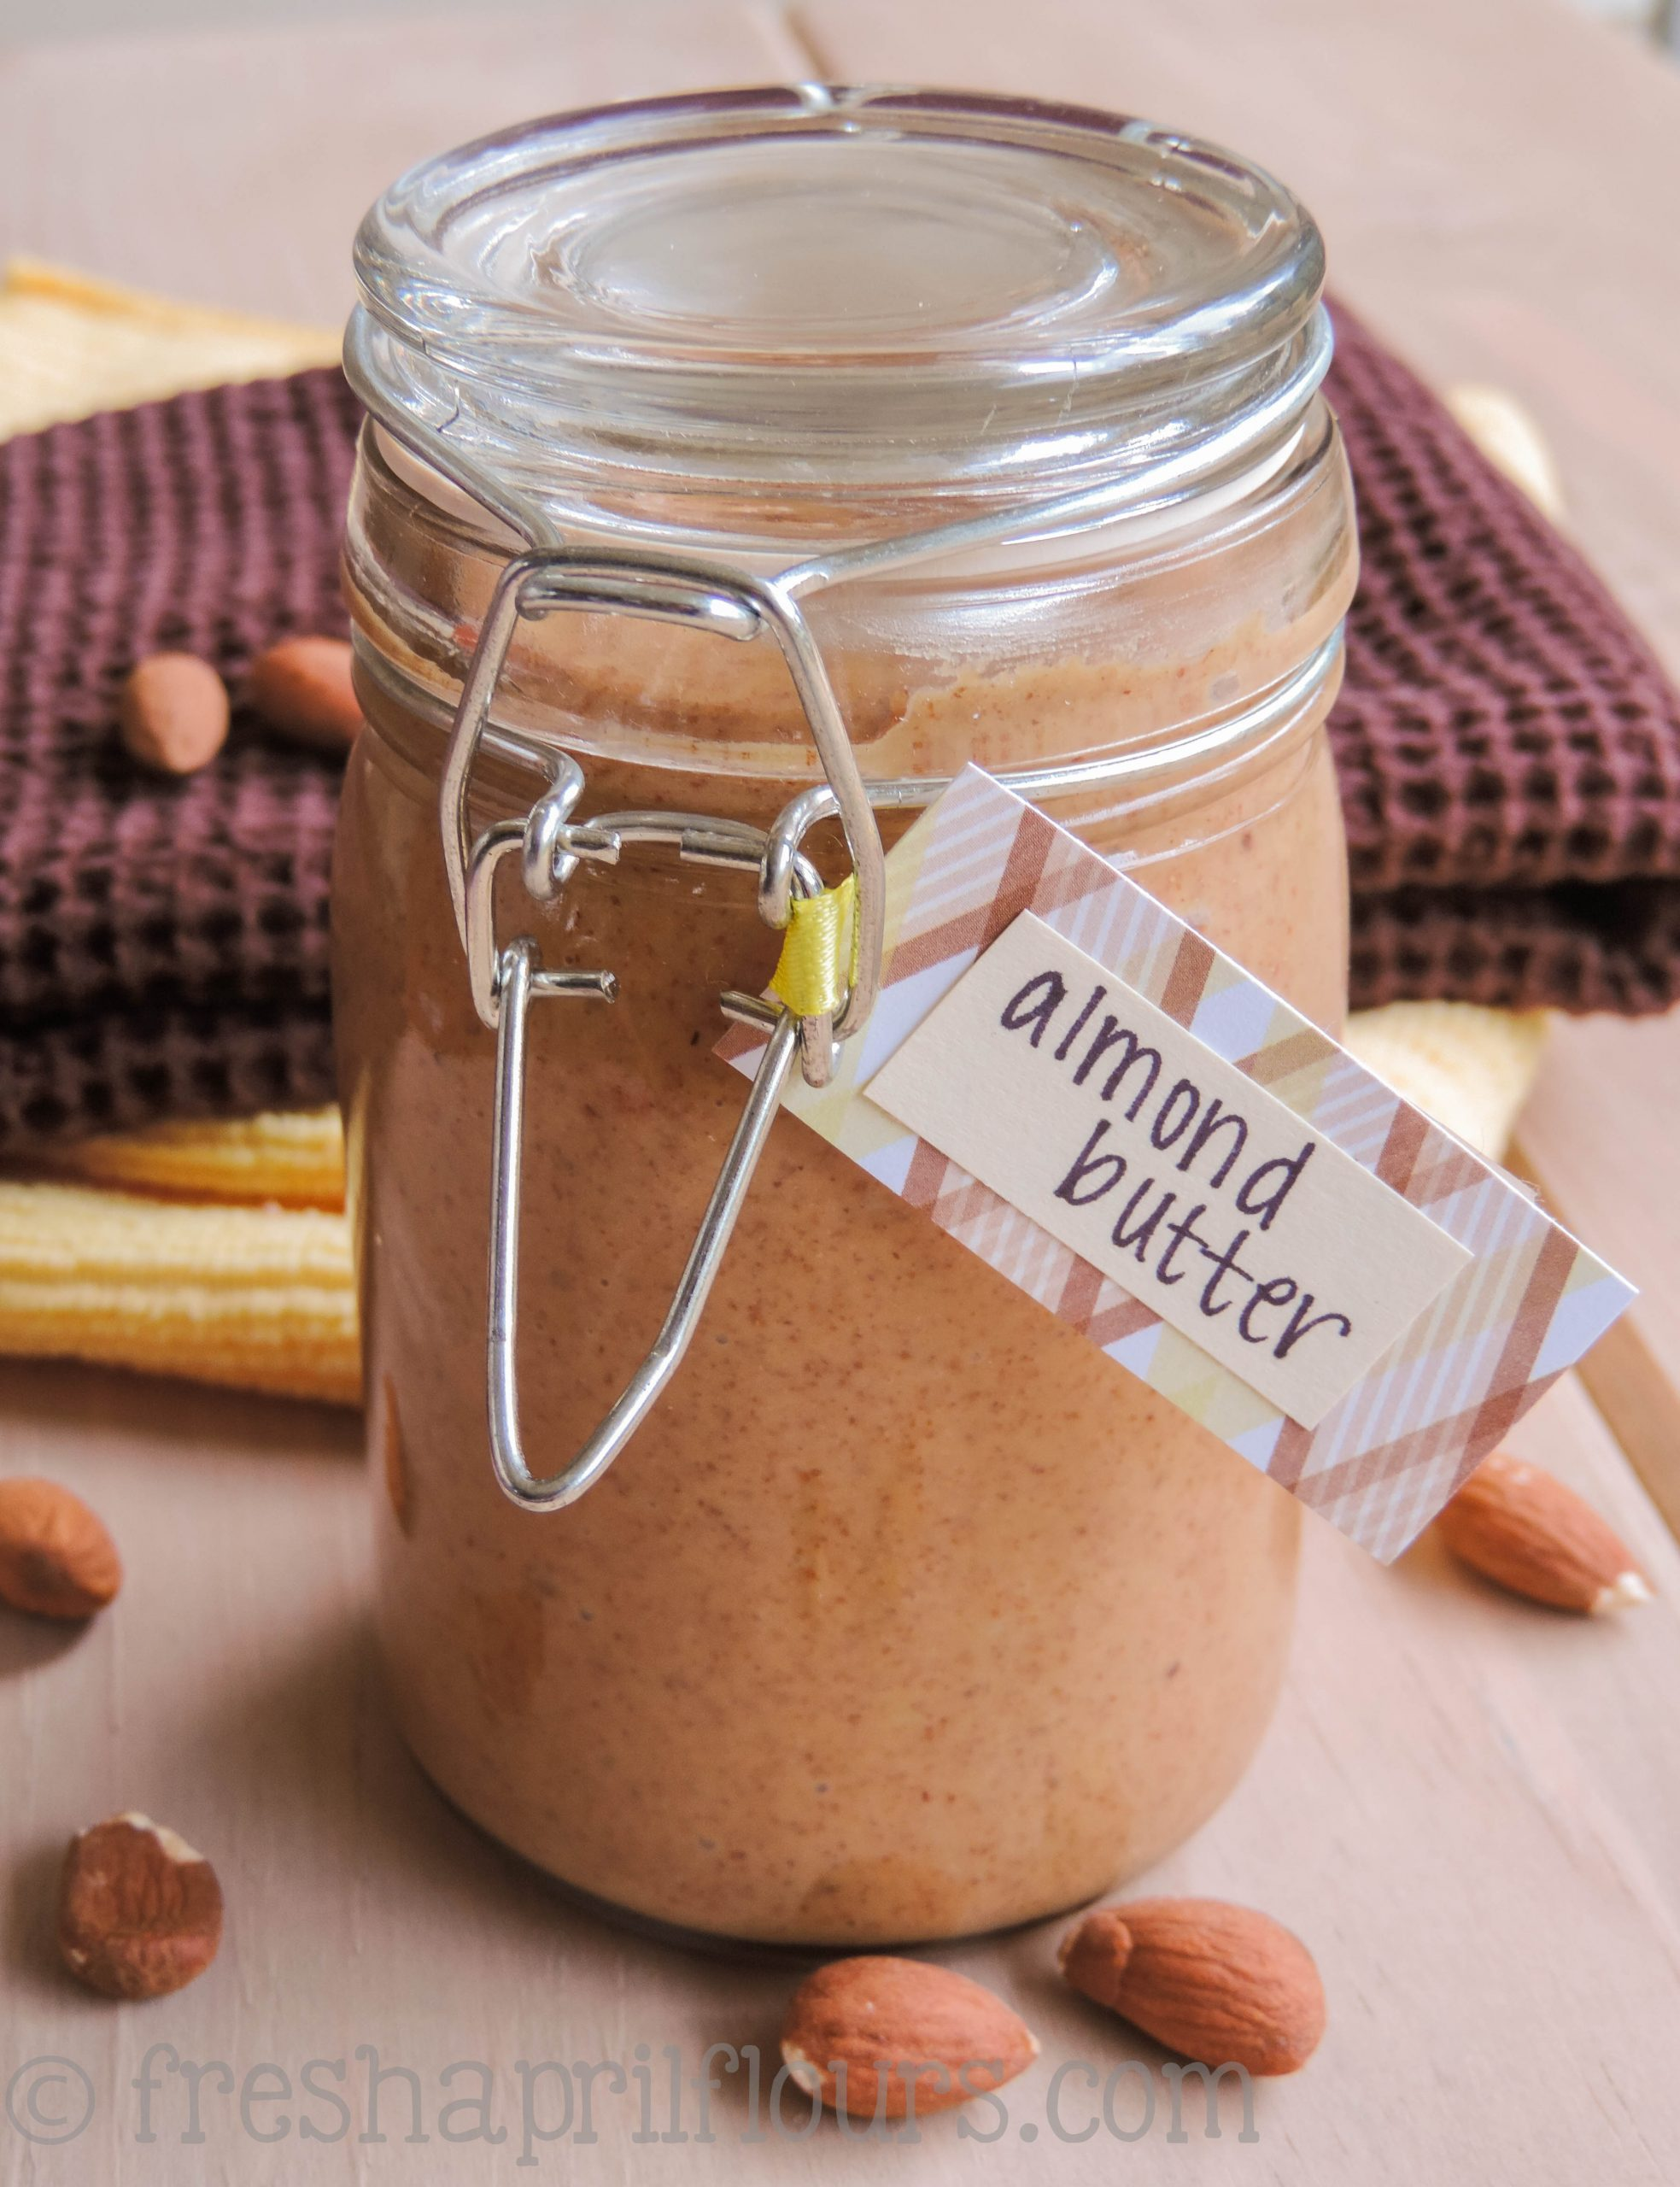 Homemade Honey Roasted Almond Butter: Making almond butter at home is much easier than you think. Never spend $11 on a jar again!